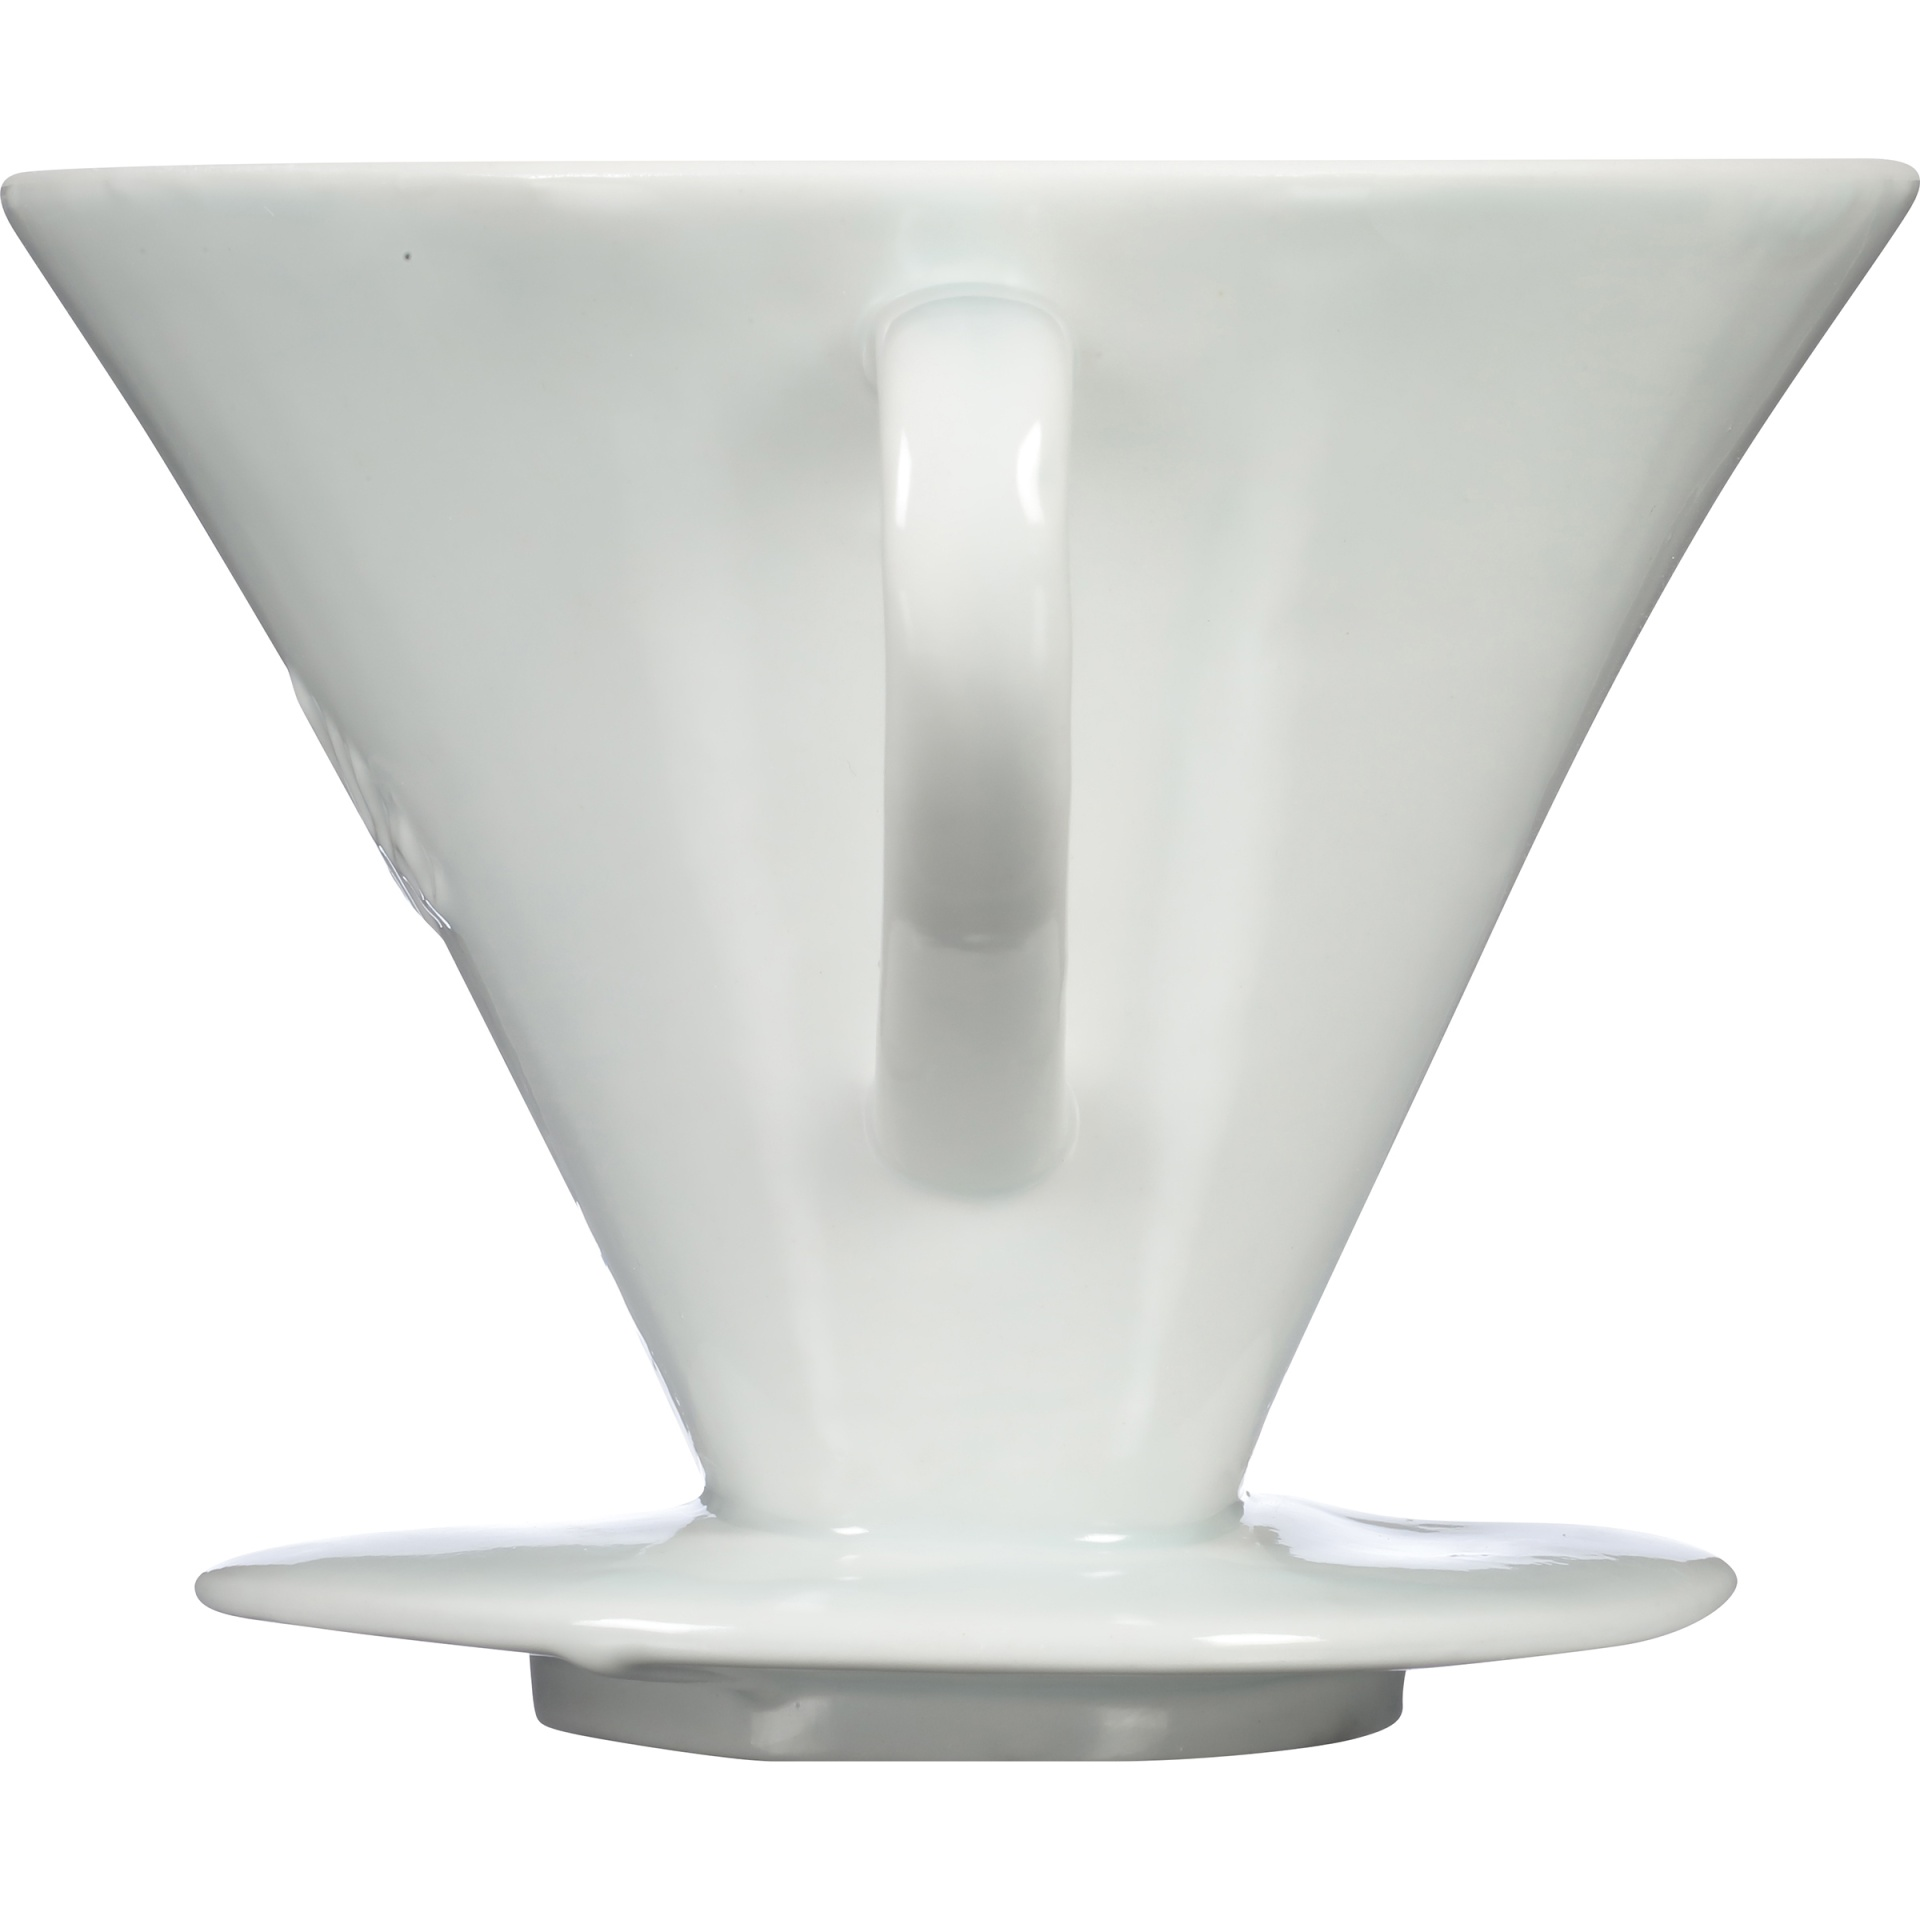 slide 5 of 6, Melitta 1 Cup Porcelain Pour-Over Brewing Cone,